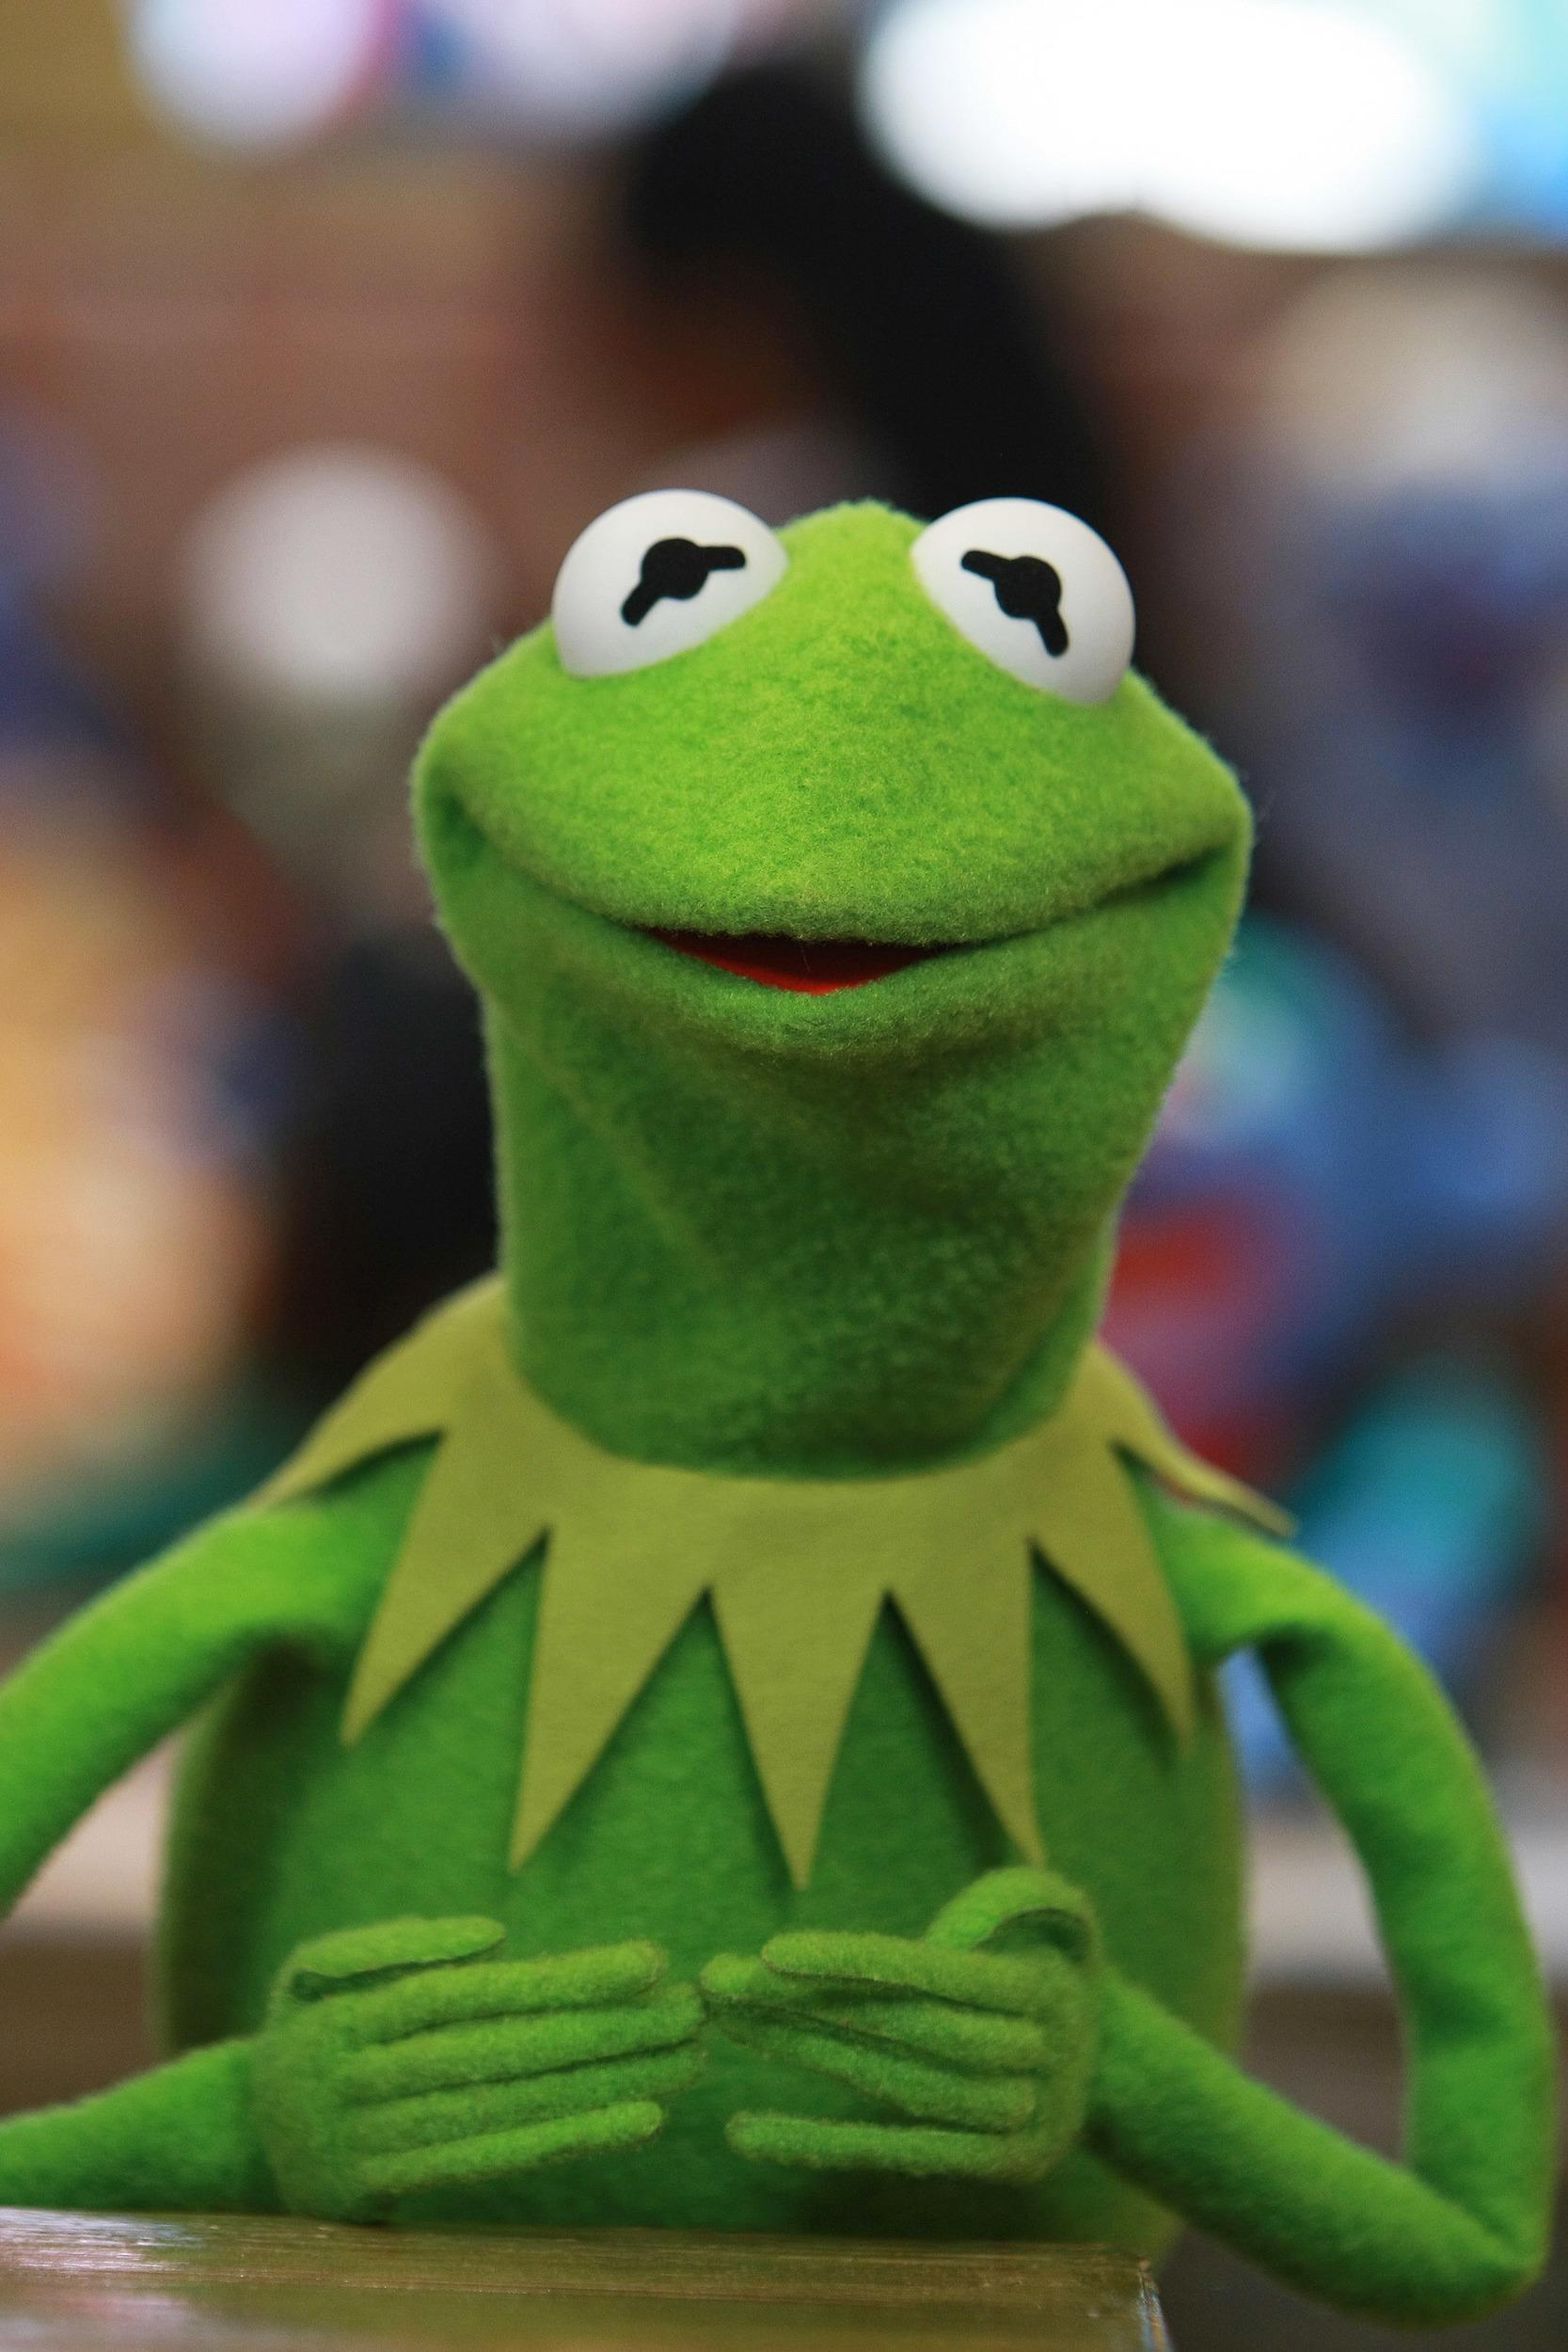 Kermit the Frog appears at the Whatnot Workshop at FAO Schwarz on November 11, 2008 in New York City. (Photo by Neilson Barnard/Getty Images for The Muppets Studio)